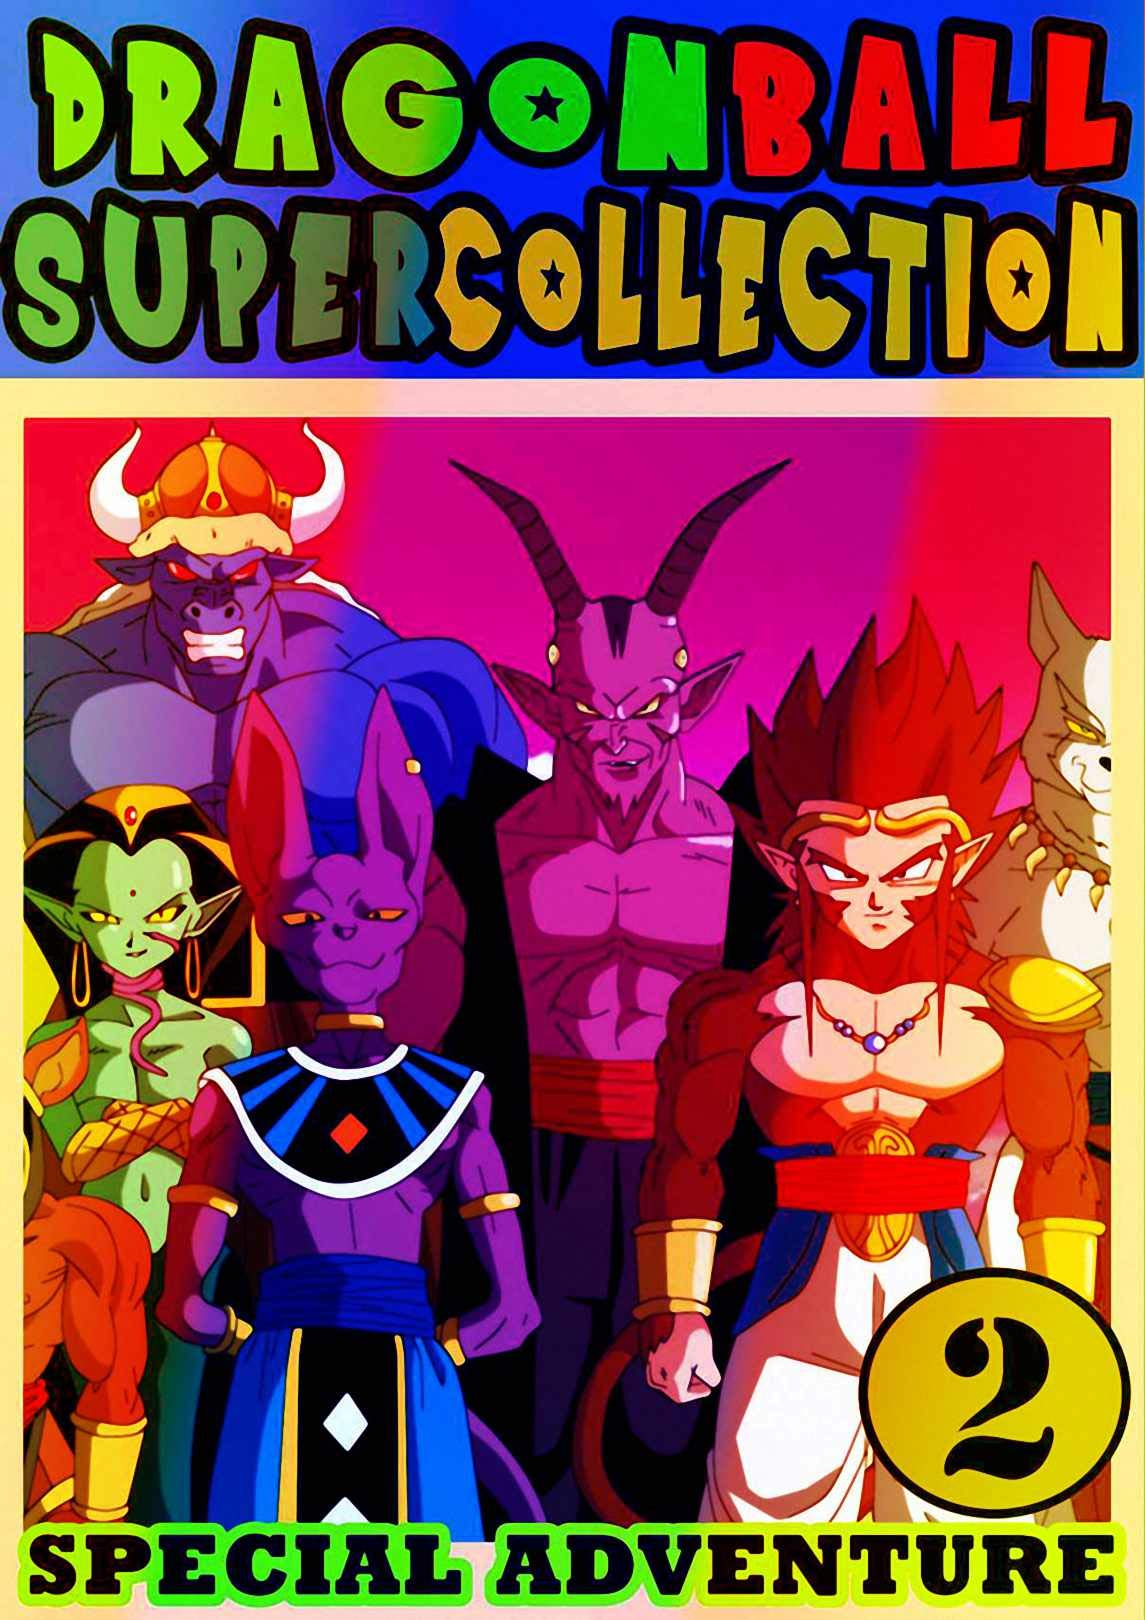 Super DragonBall Adventure Special: Collection Book 2 Action Adventure Fantasy Manga For Teenagers ,Shonen Fan Dragon Super Ball Great Graphic Novel